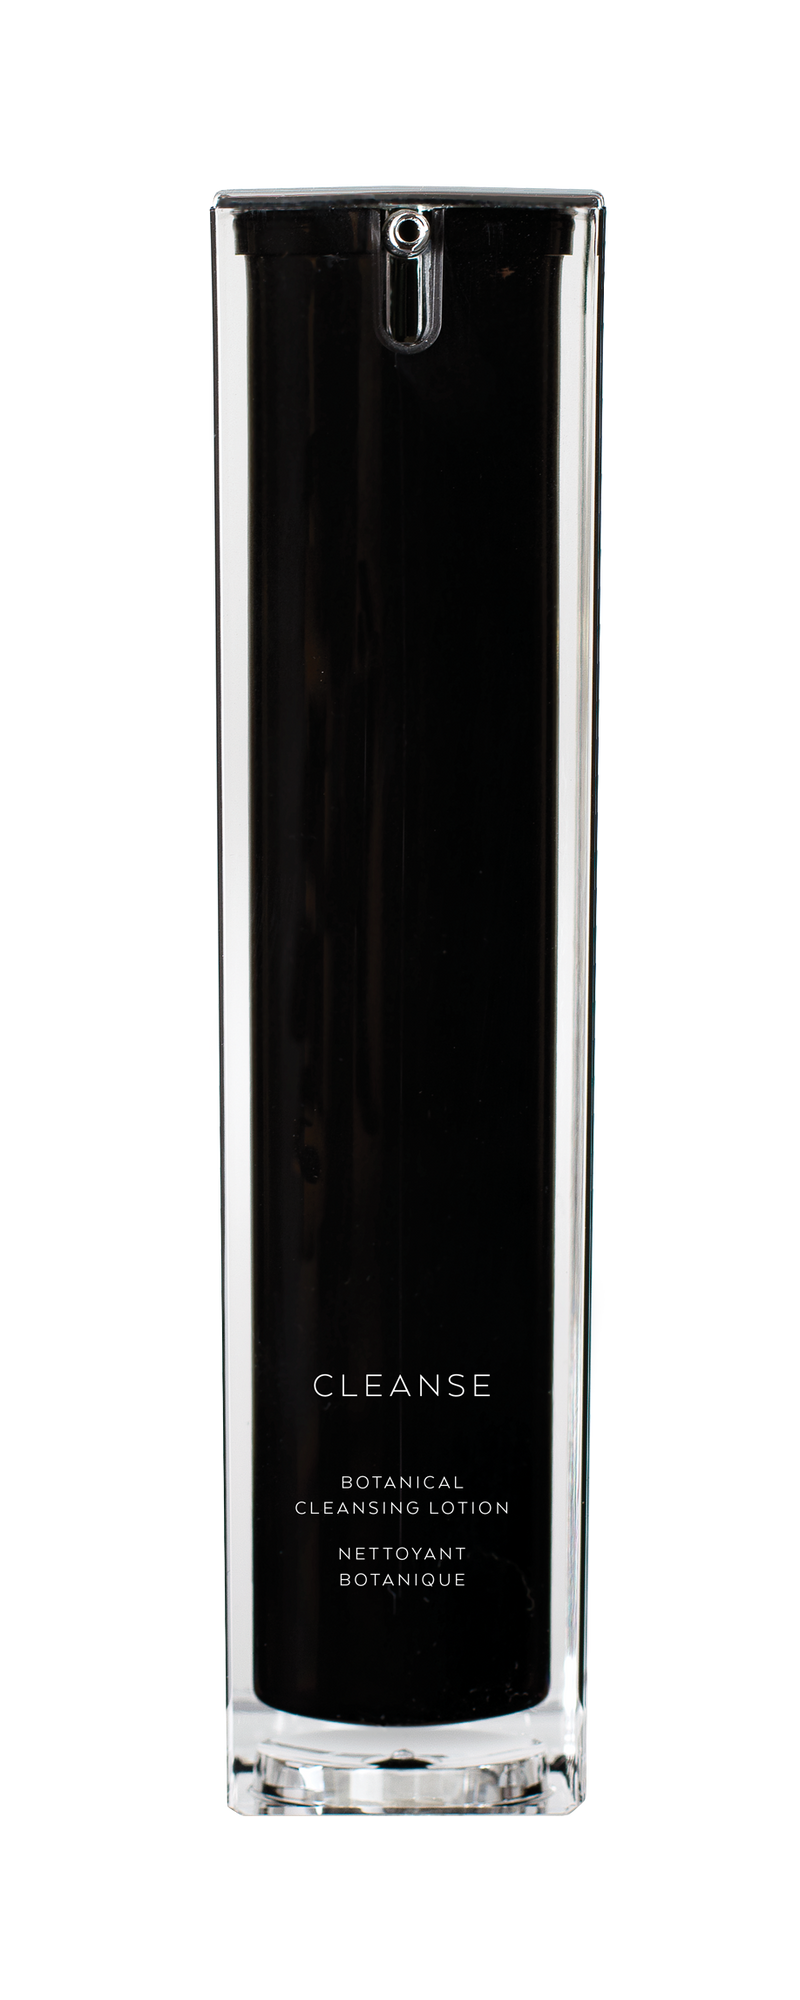 ★SALE★ CLEANSE - Botanical Cleansing lotion, Jouvange